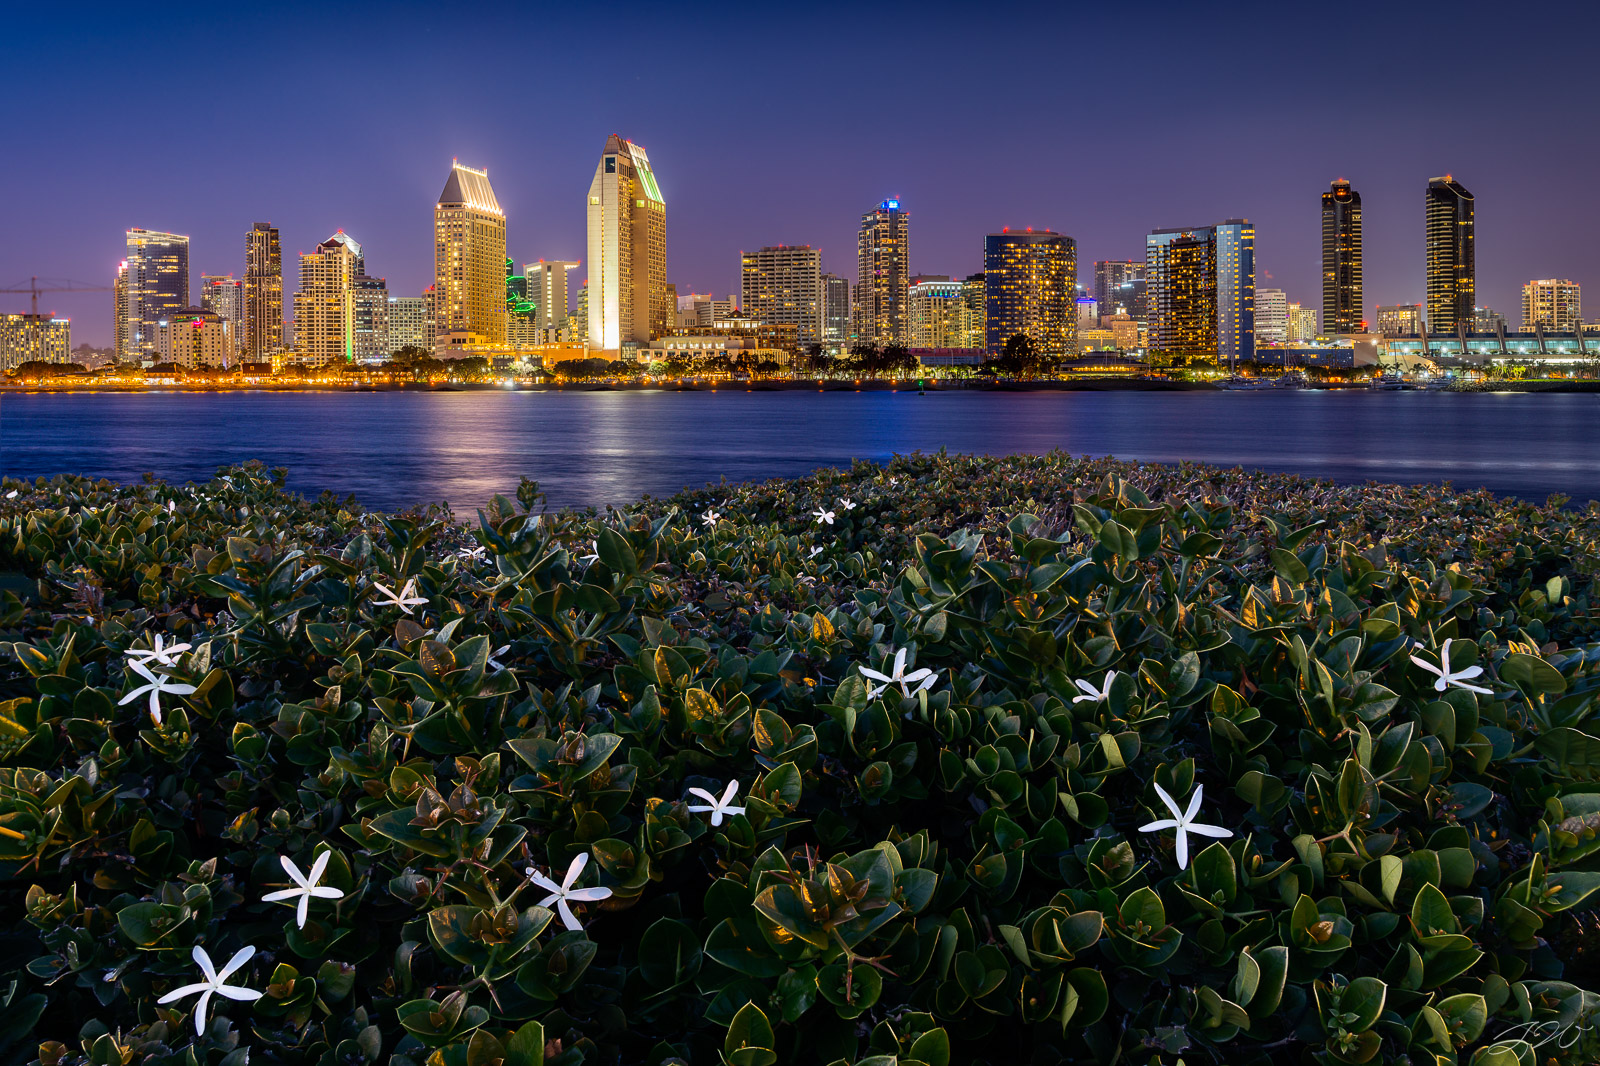 Fine Art Limited Edition of 100. A stunning image of the San Diego skyline at night. I found these beautiful flowers blooming...